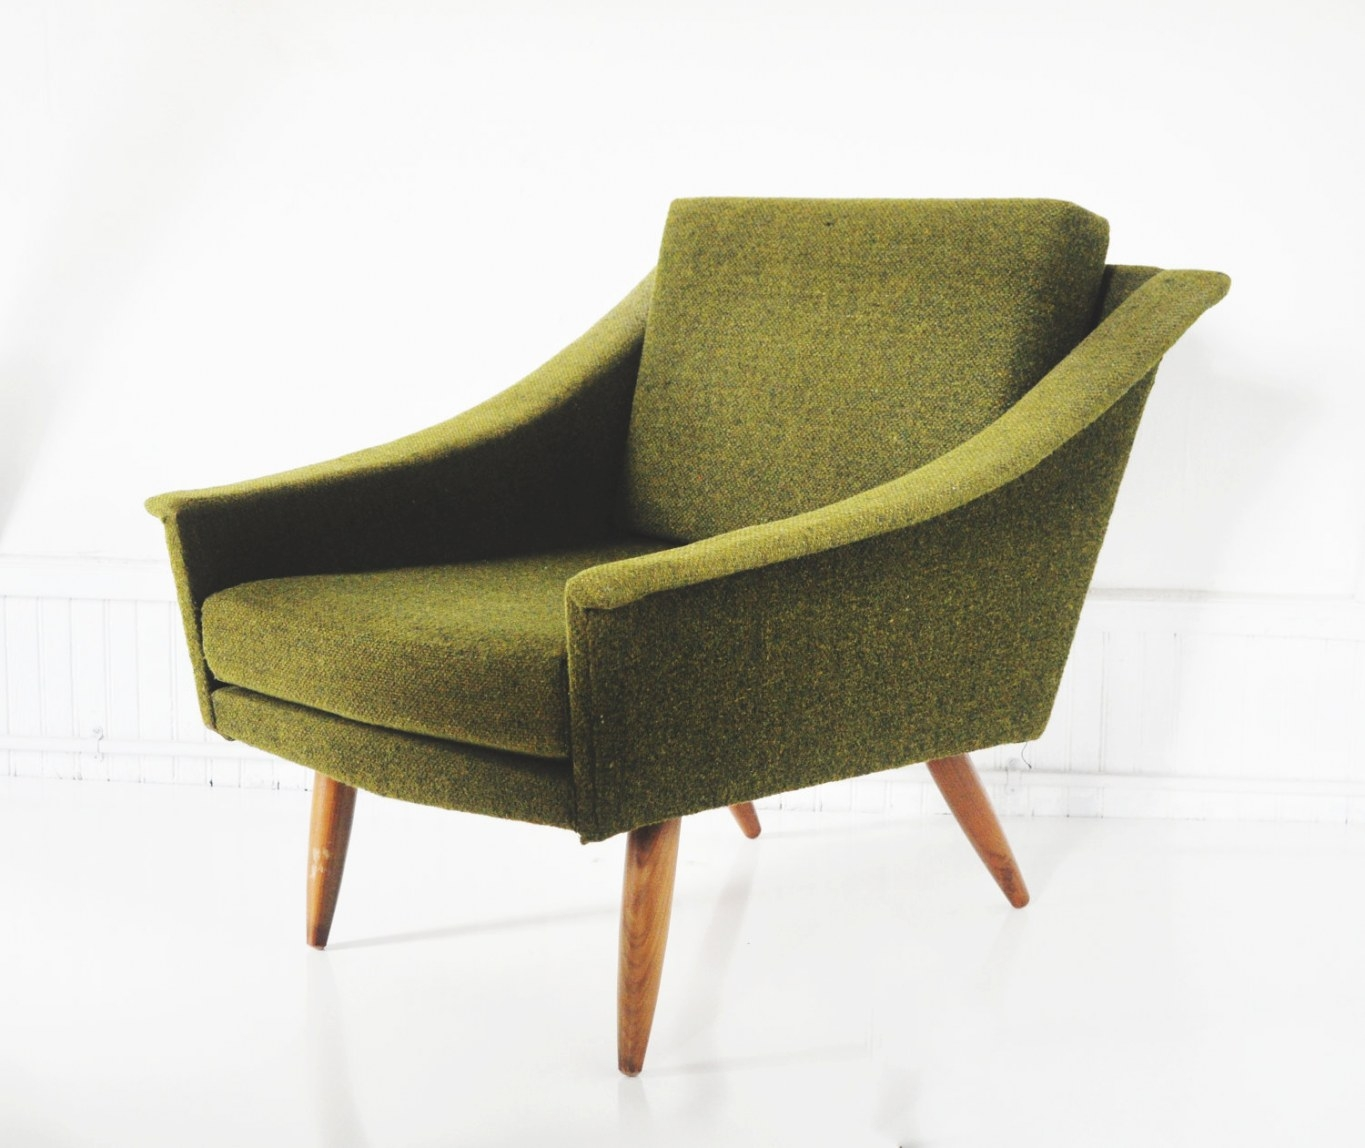 Mid-Century Lounge Chair / Adrian Pearsall For Craft throughout Mid Century Lounge Chair